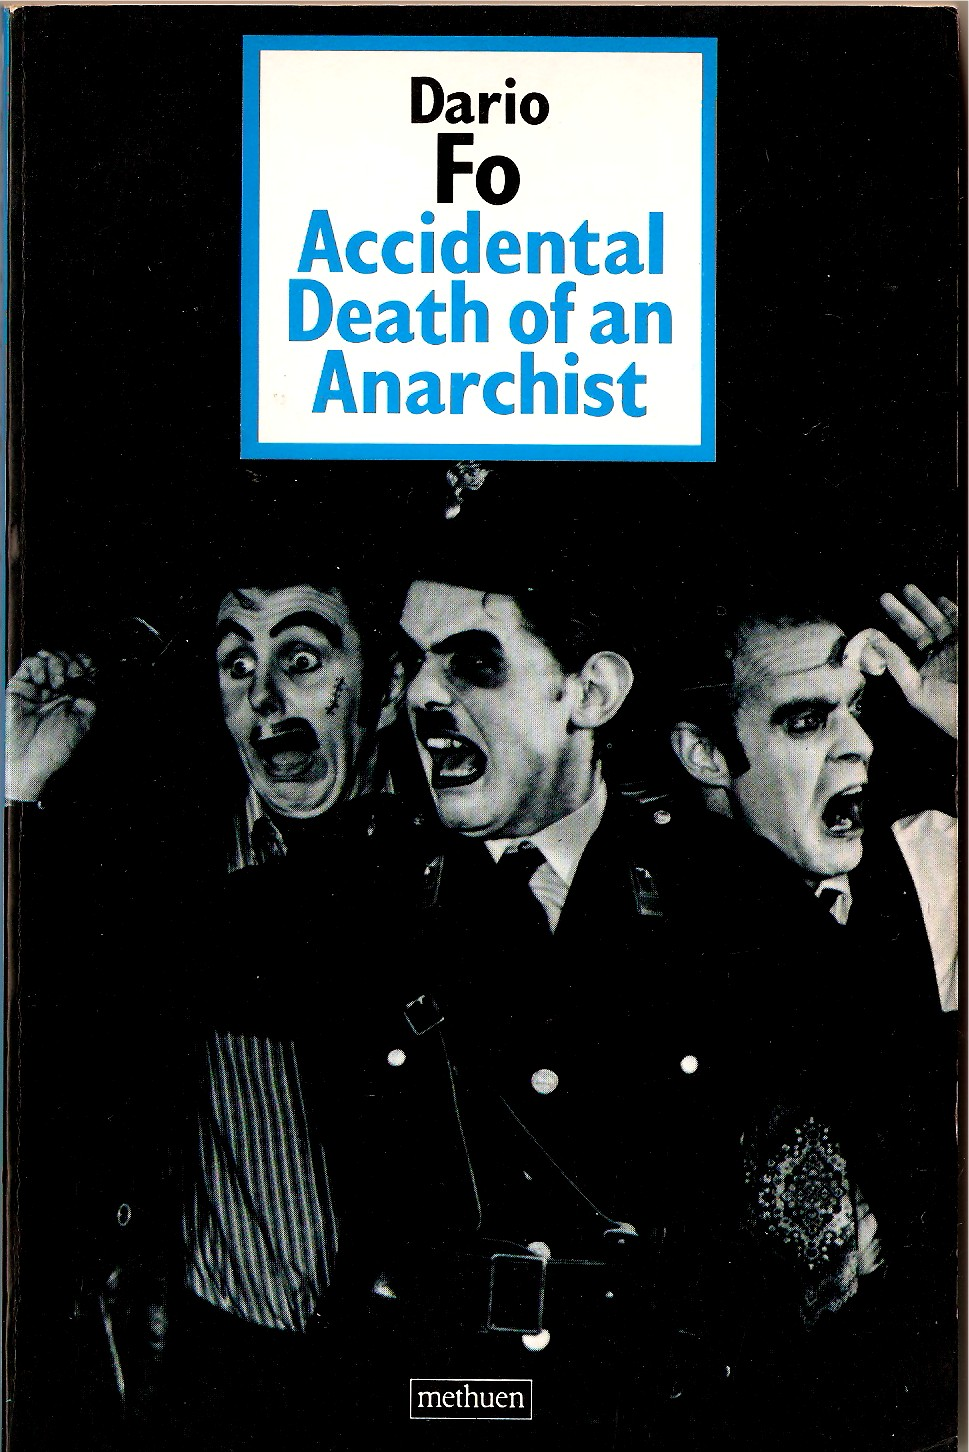 accidental death of an anarchist dario fo Sydney theatre company and adshel present accidental death of an anarchist by dario fo in a new adaptation by francis greenslade with sarah giles.